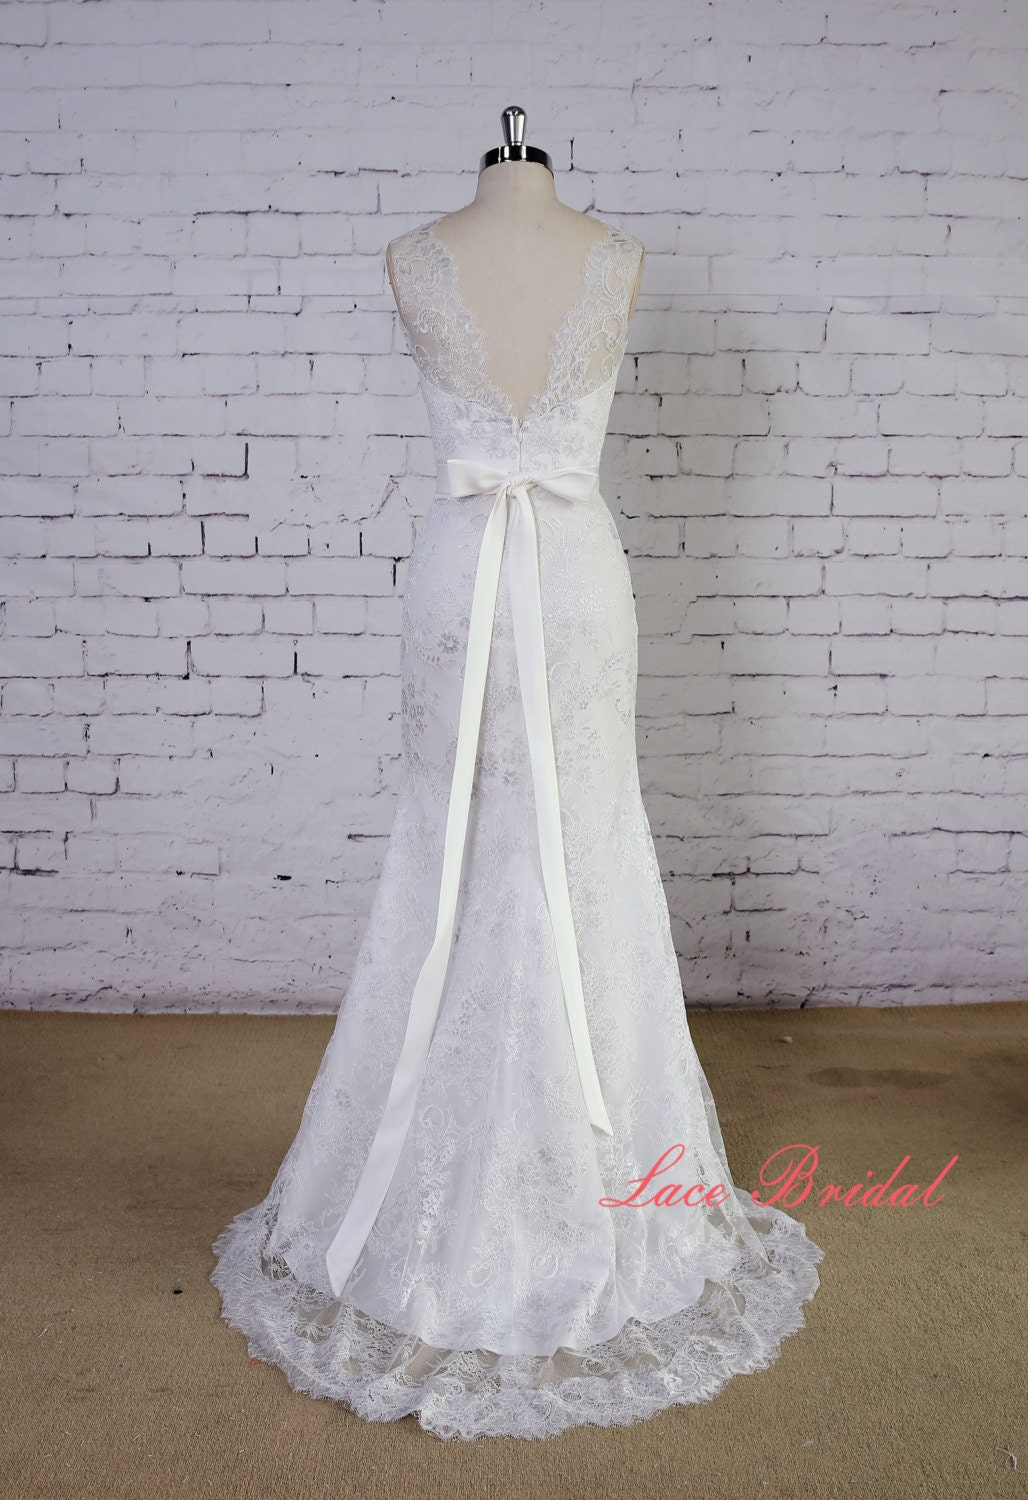 Soft light grey lace wedding gown v back wedding dress mermaid for Light grey wedding dress